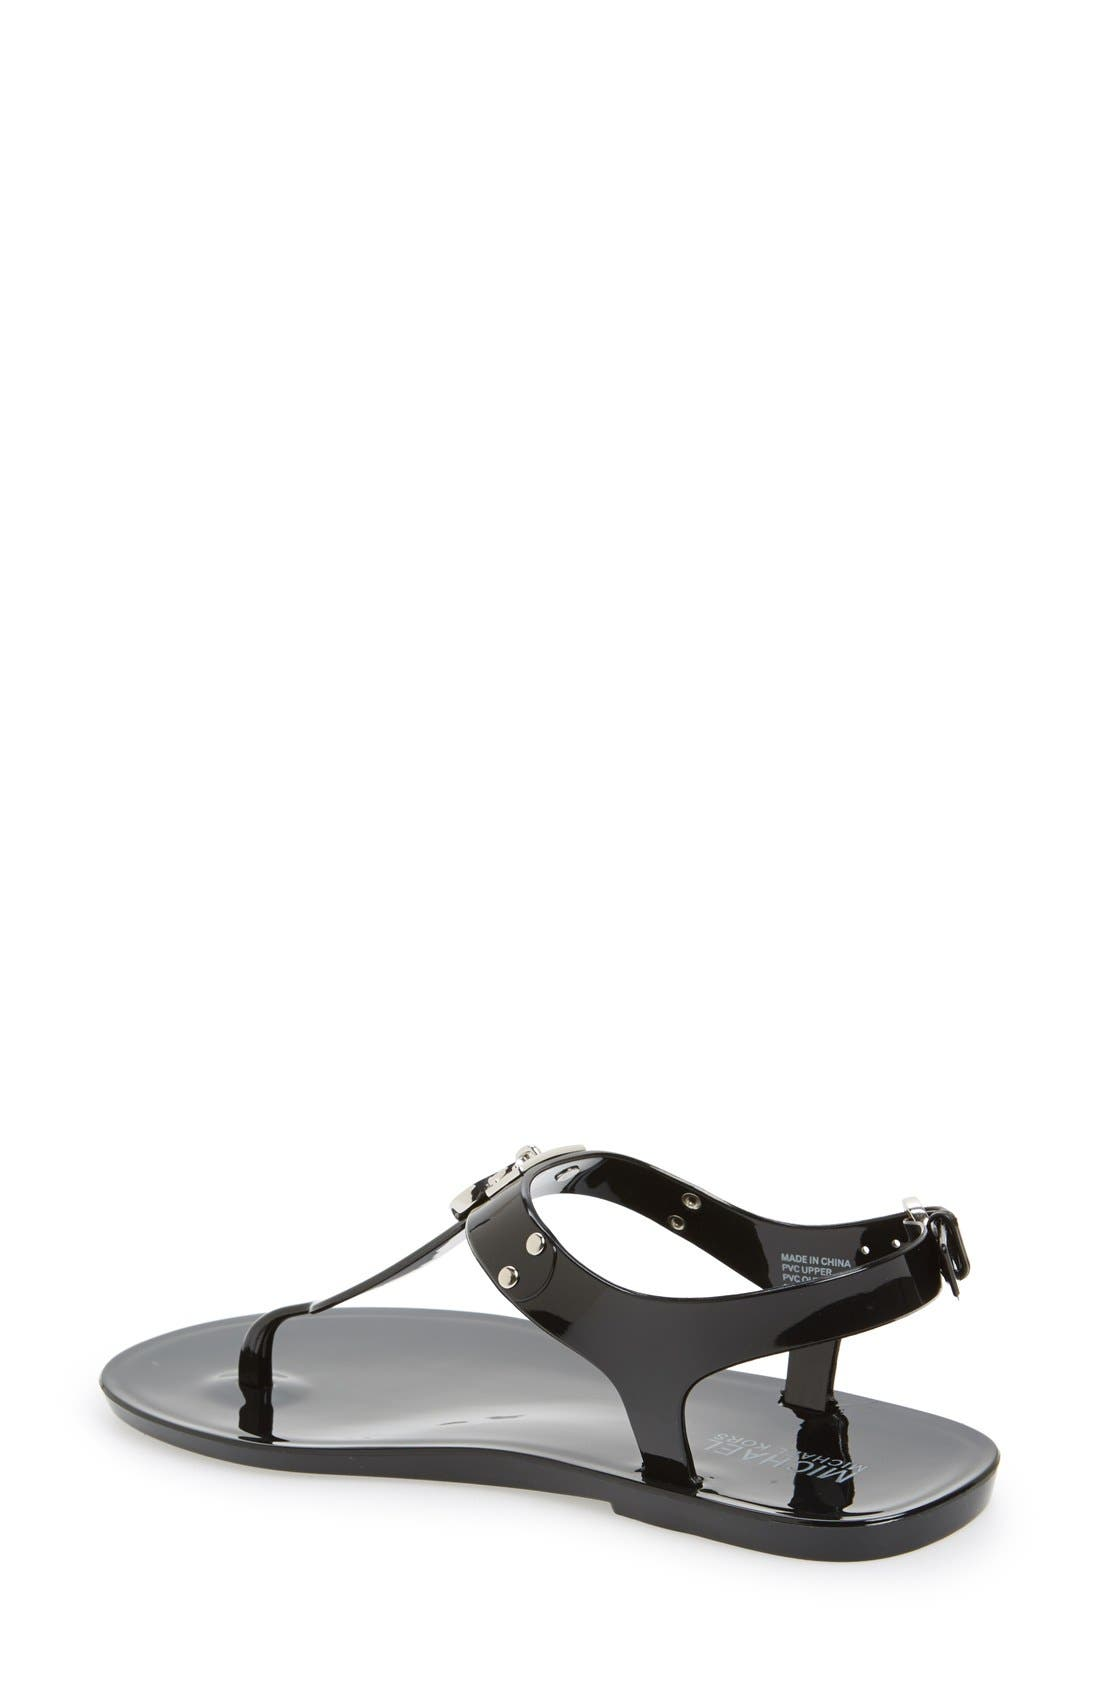 Alternate Image 3  - MICHAEL Michael Kors 'Hamilton' Jelly Sandal (Women)